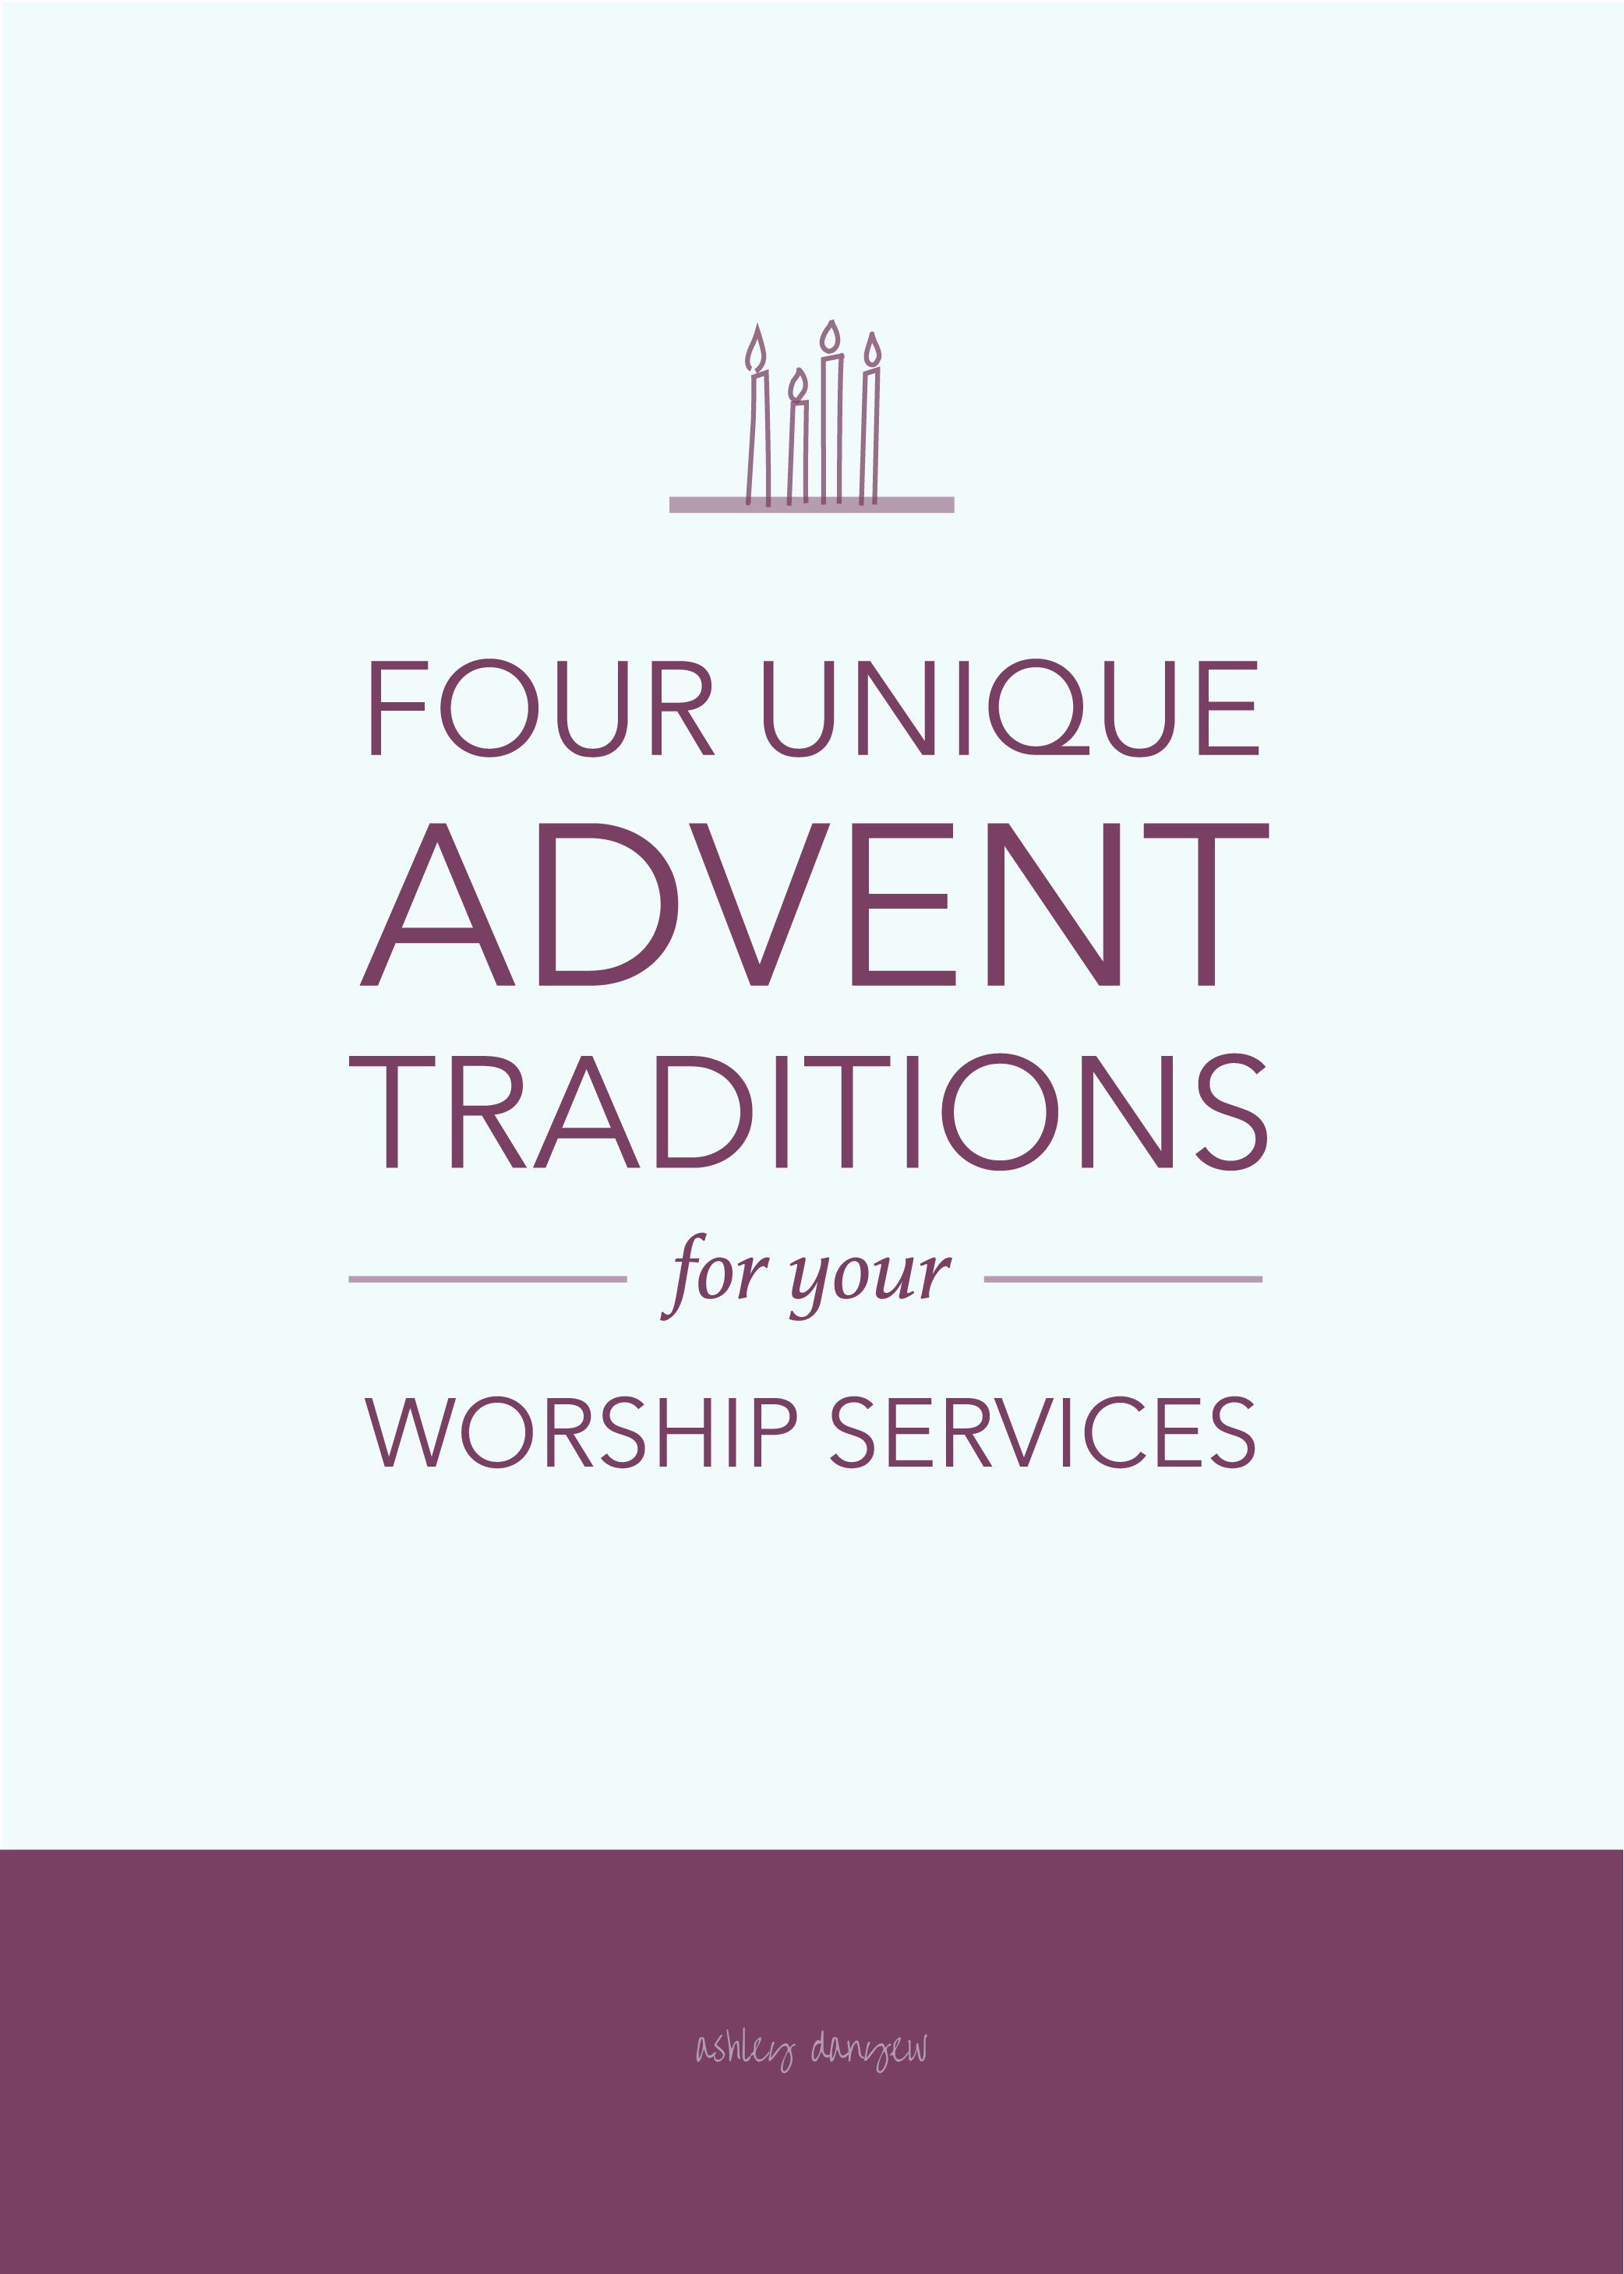 Four Unique Advent Traditions for Your Worship Services